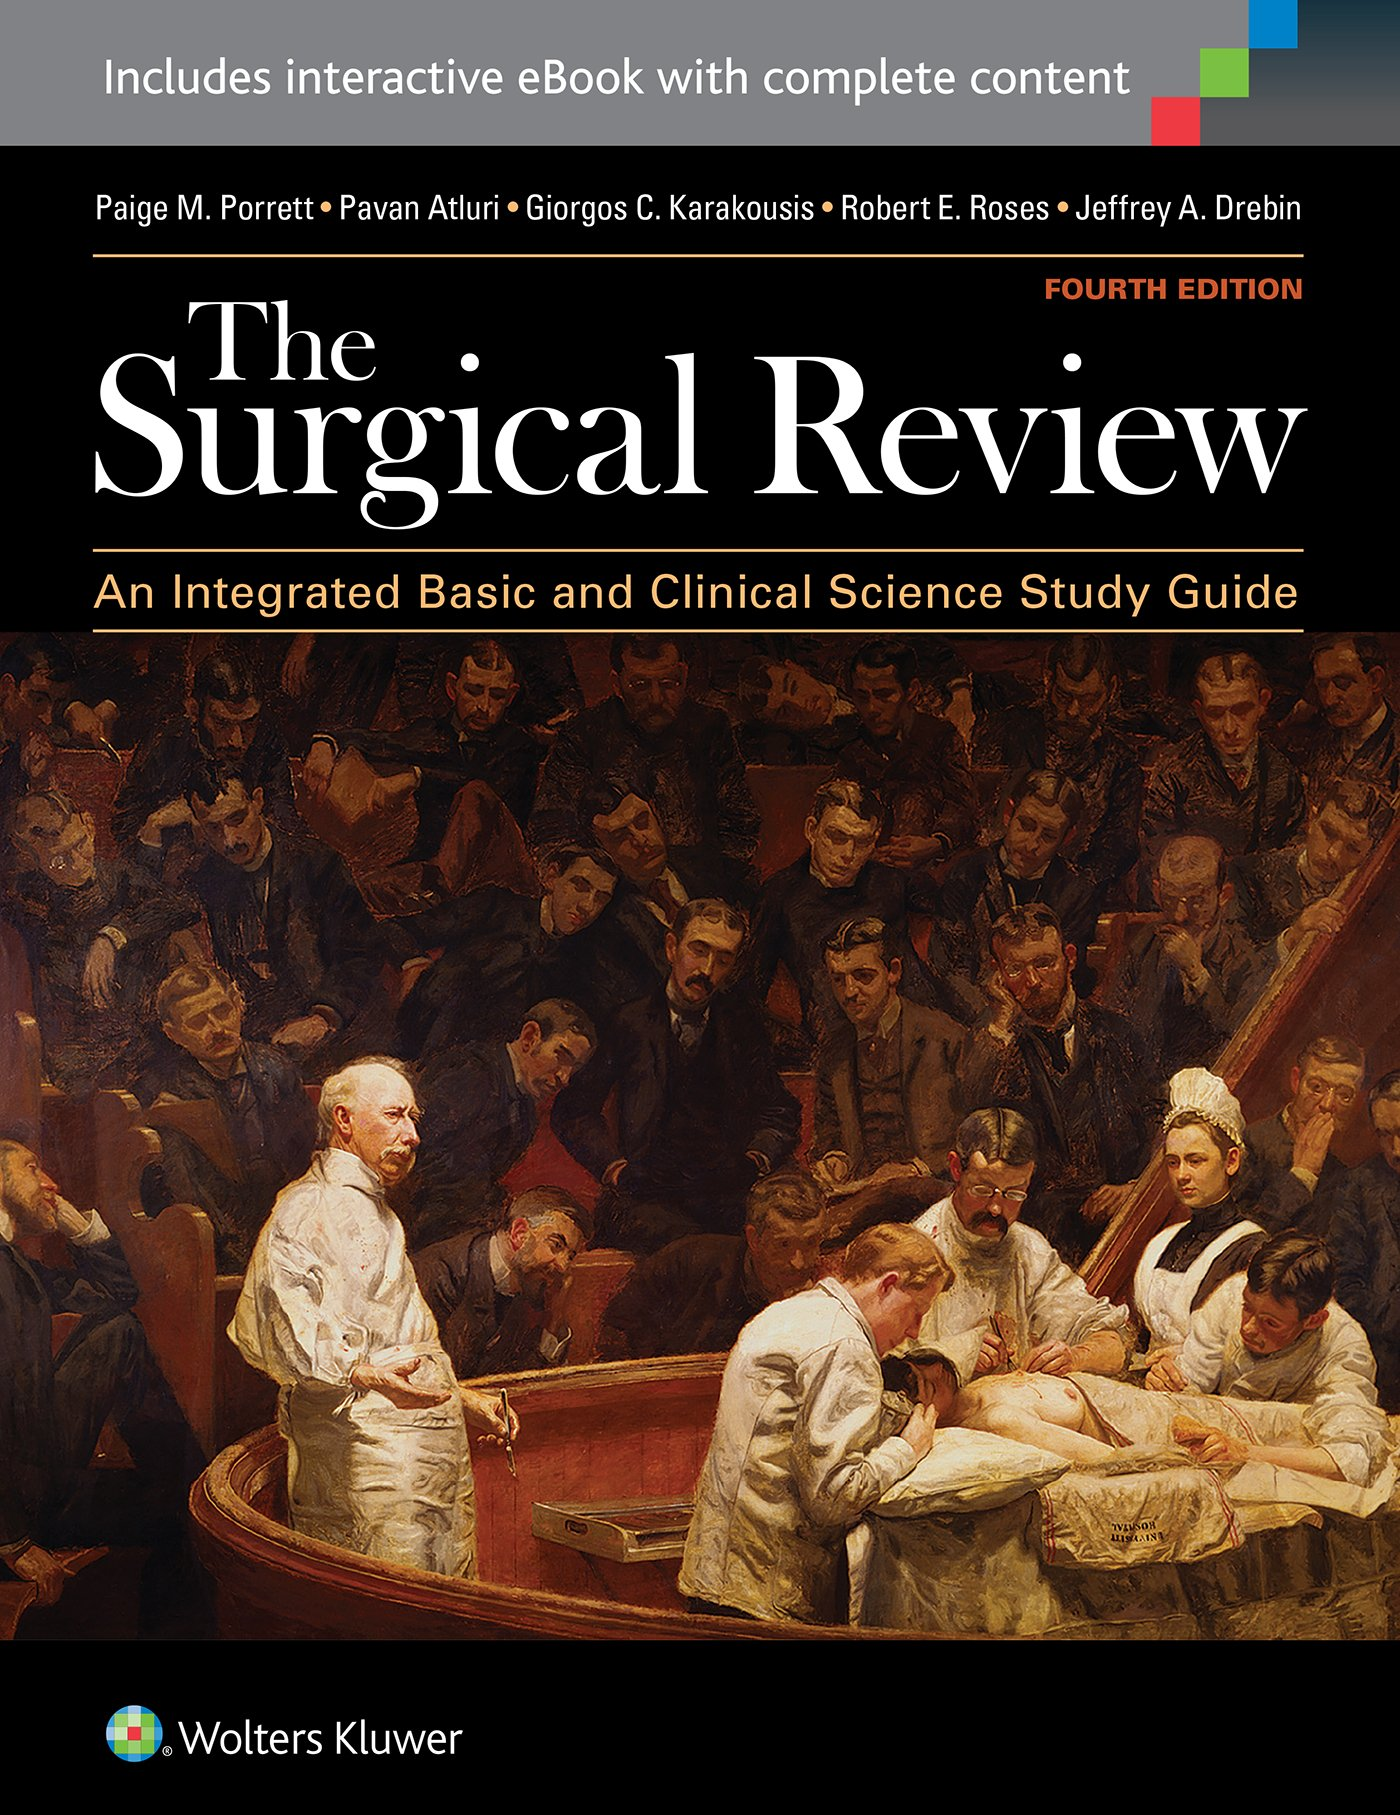 The Surgical Review: An Integrated Basic and Clinical Science Study Guide by Lippincott Williams and Wilkins